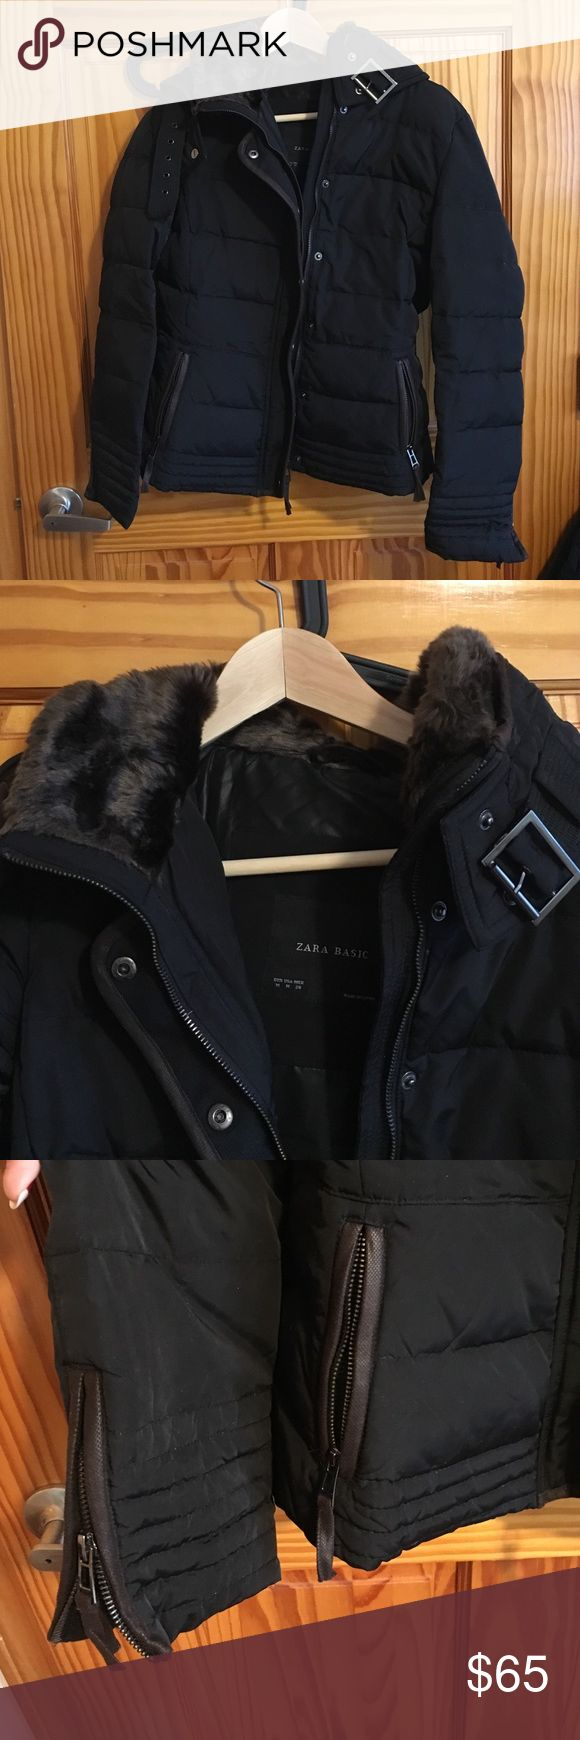 Zara Down Jacket Navy with brown trim and faux-fur lined collar. Collar also has zipper pocket to store the hood. Zipper pockets and details at sleeves. Zipper and button closure. Buckle feature on collar. Polyester down, very warm. Worn before, well loved. No stains, great condition. Zara Jackets & Coats